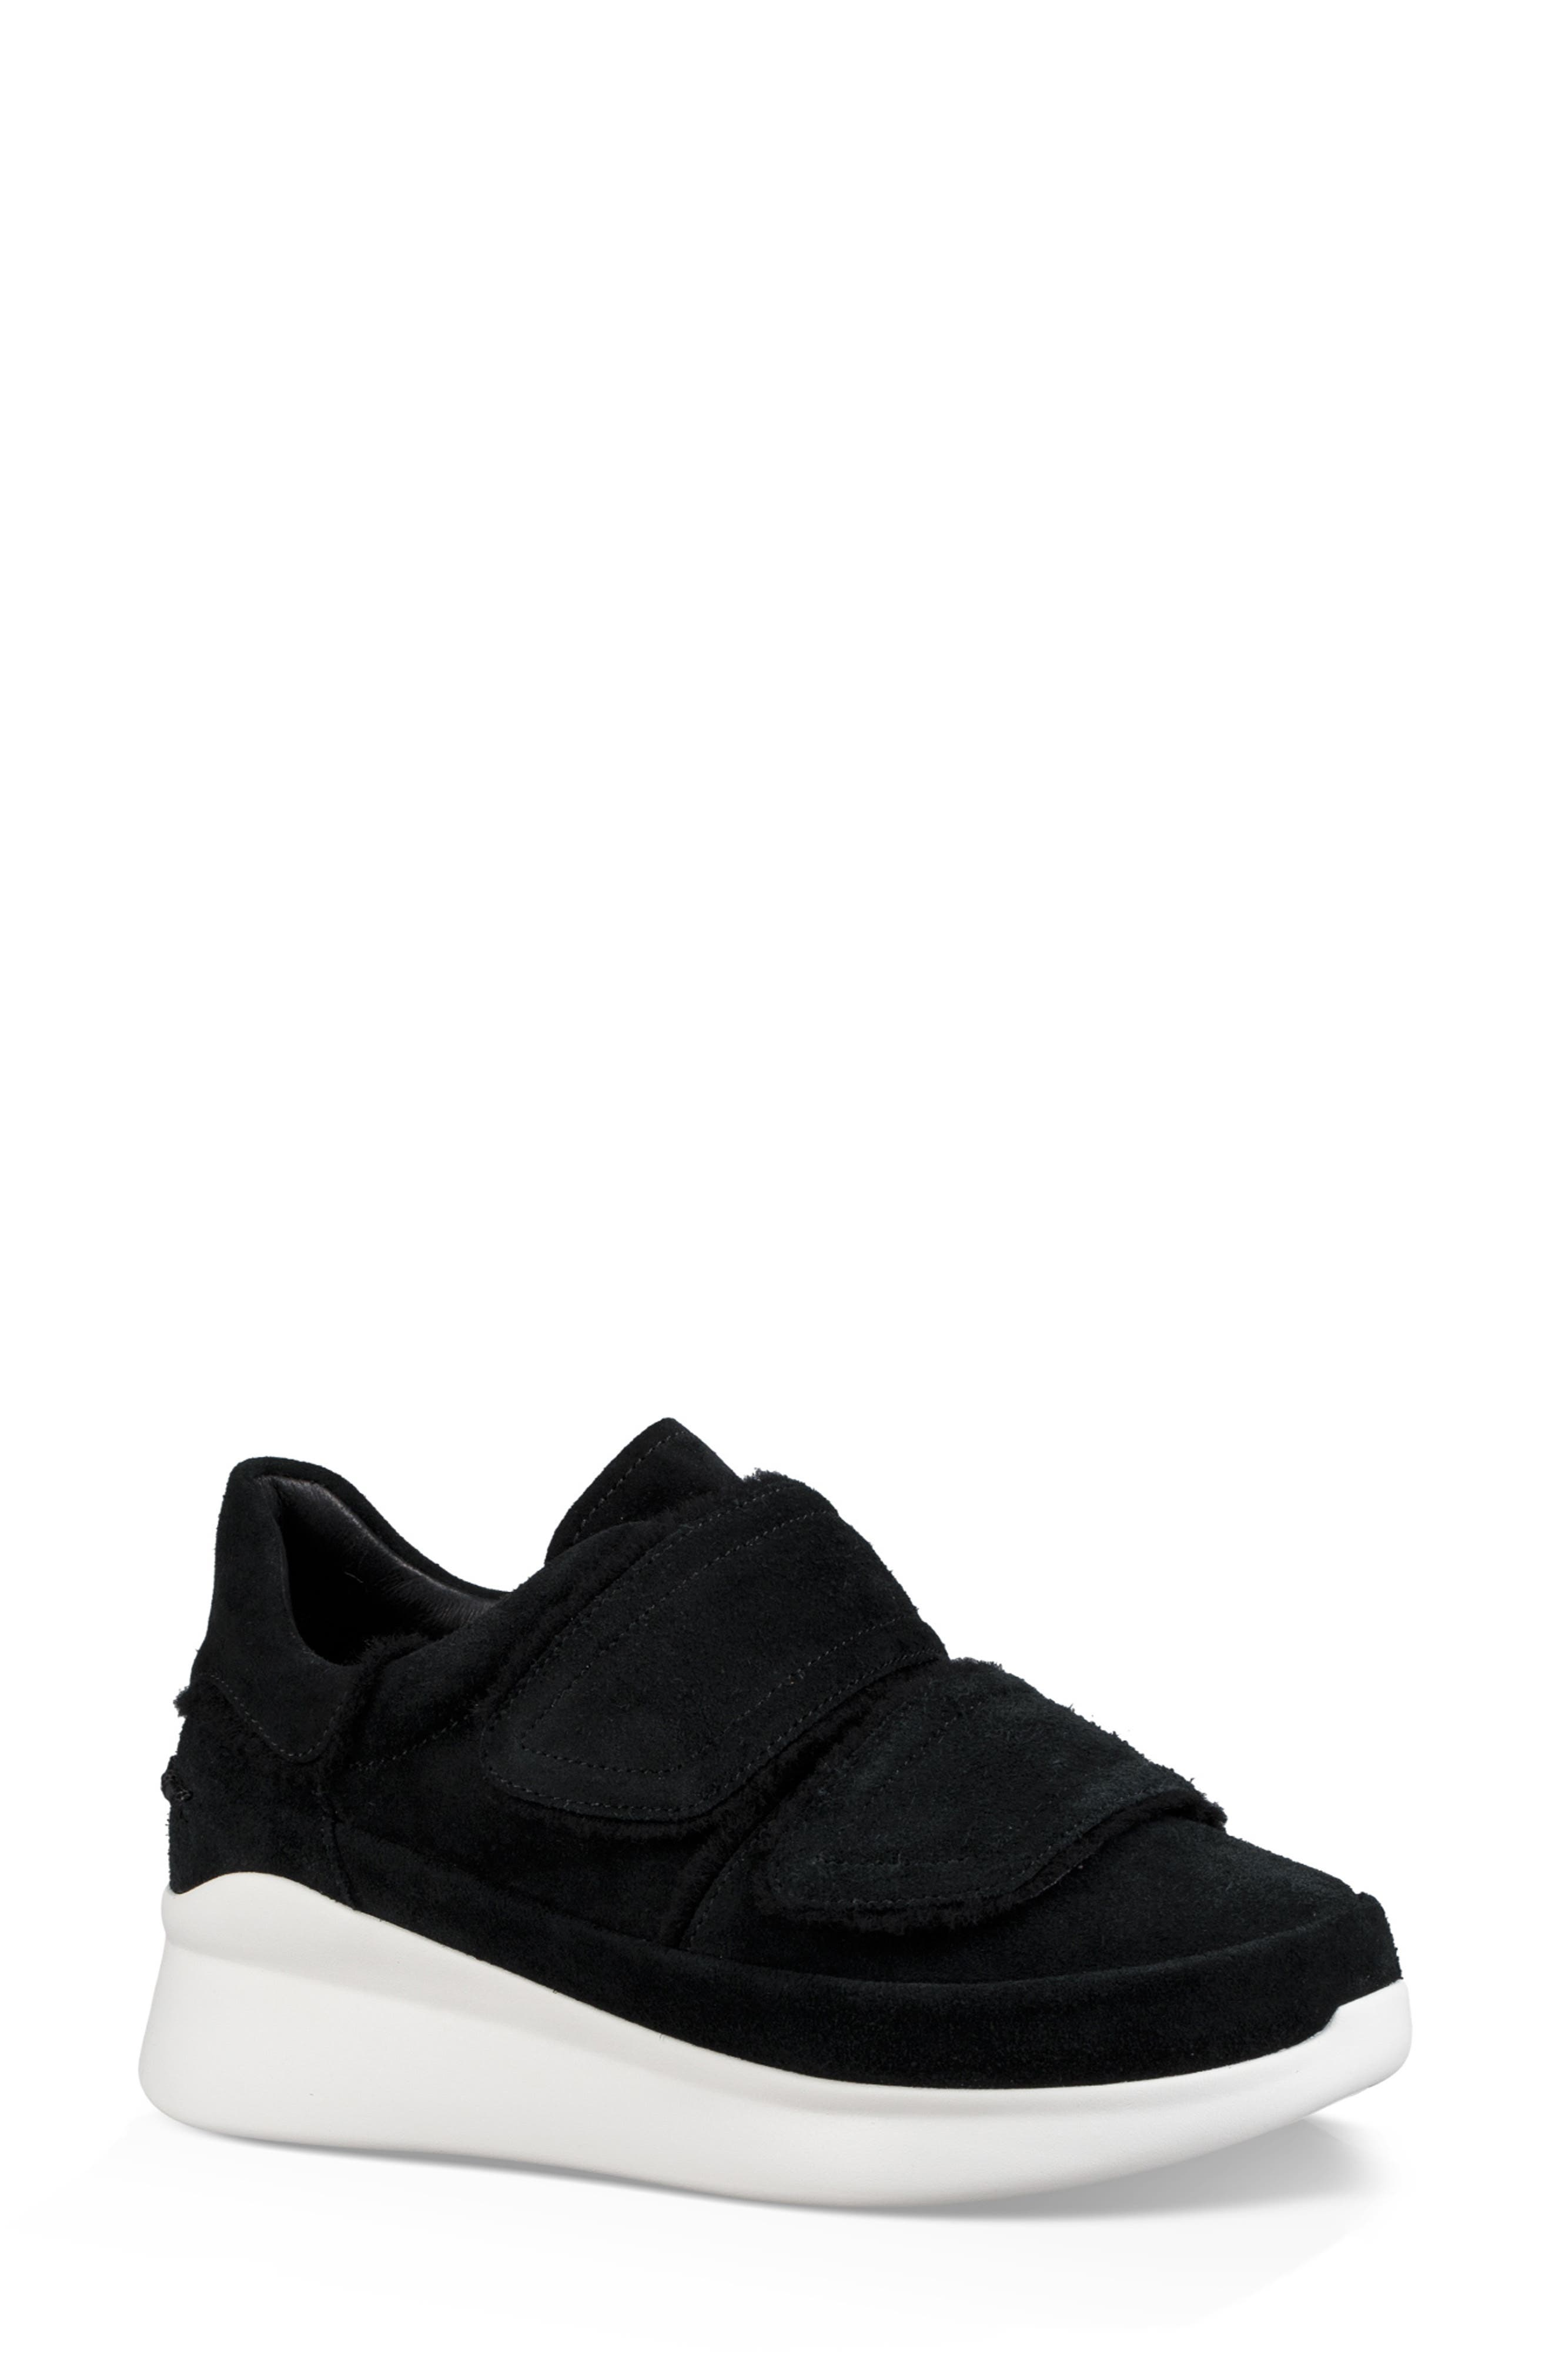 Ashby Spill Seam Sneakers in Black Leather